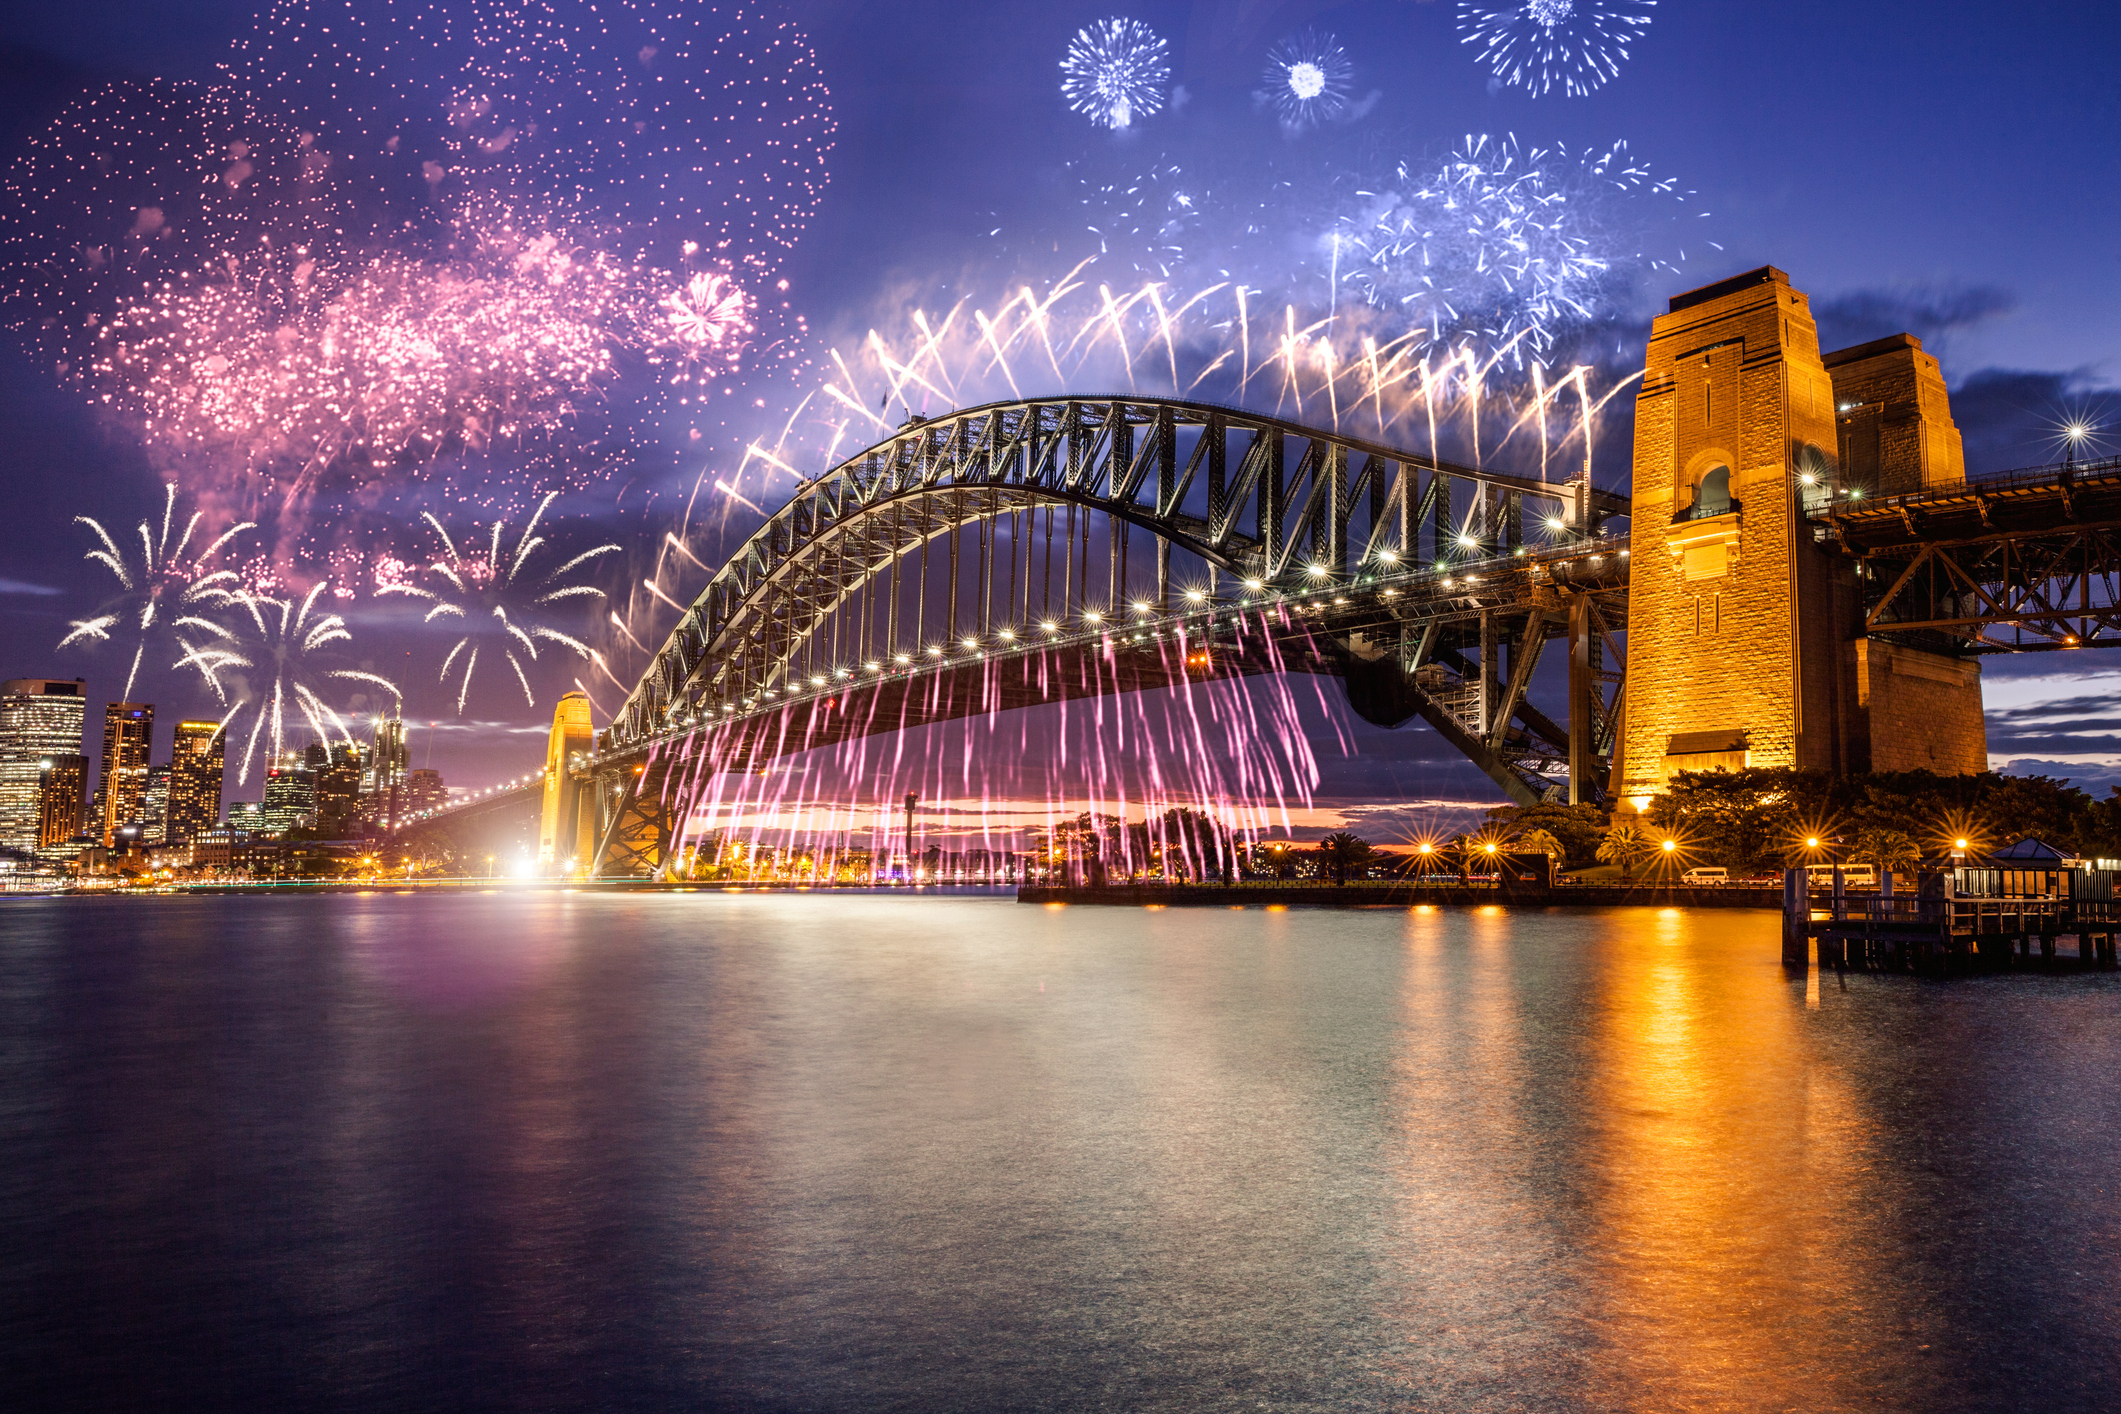 New Year's day fireworks and celebrations in Sydney : Stock Photo